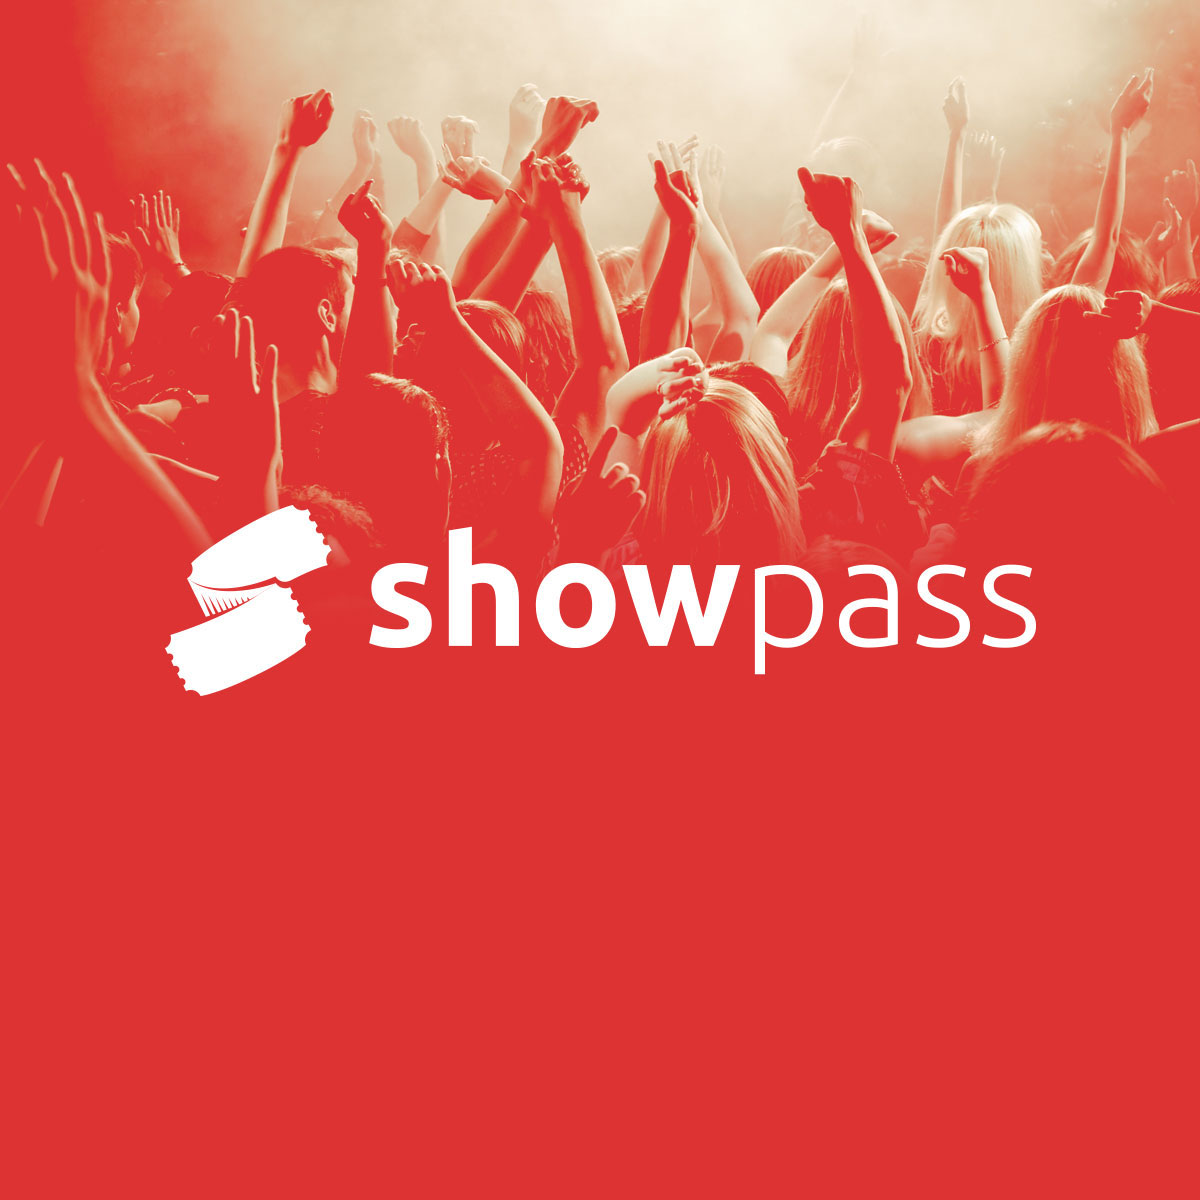 show pass logo. showpass for event tickets